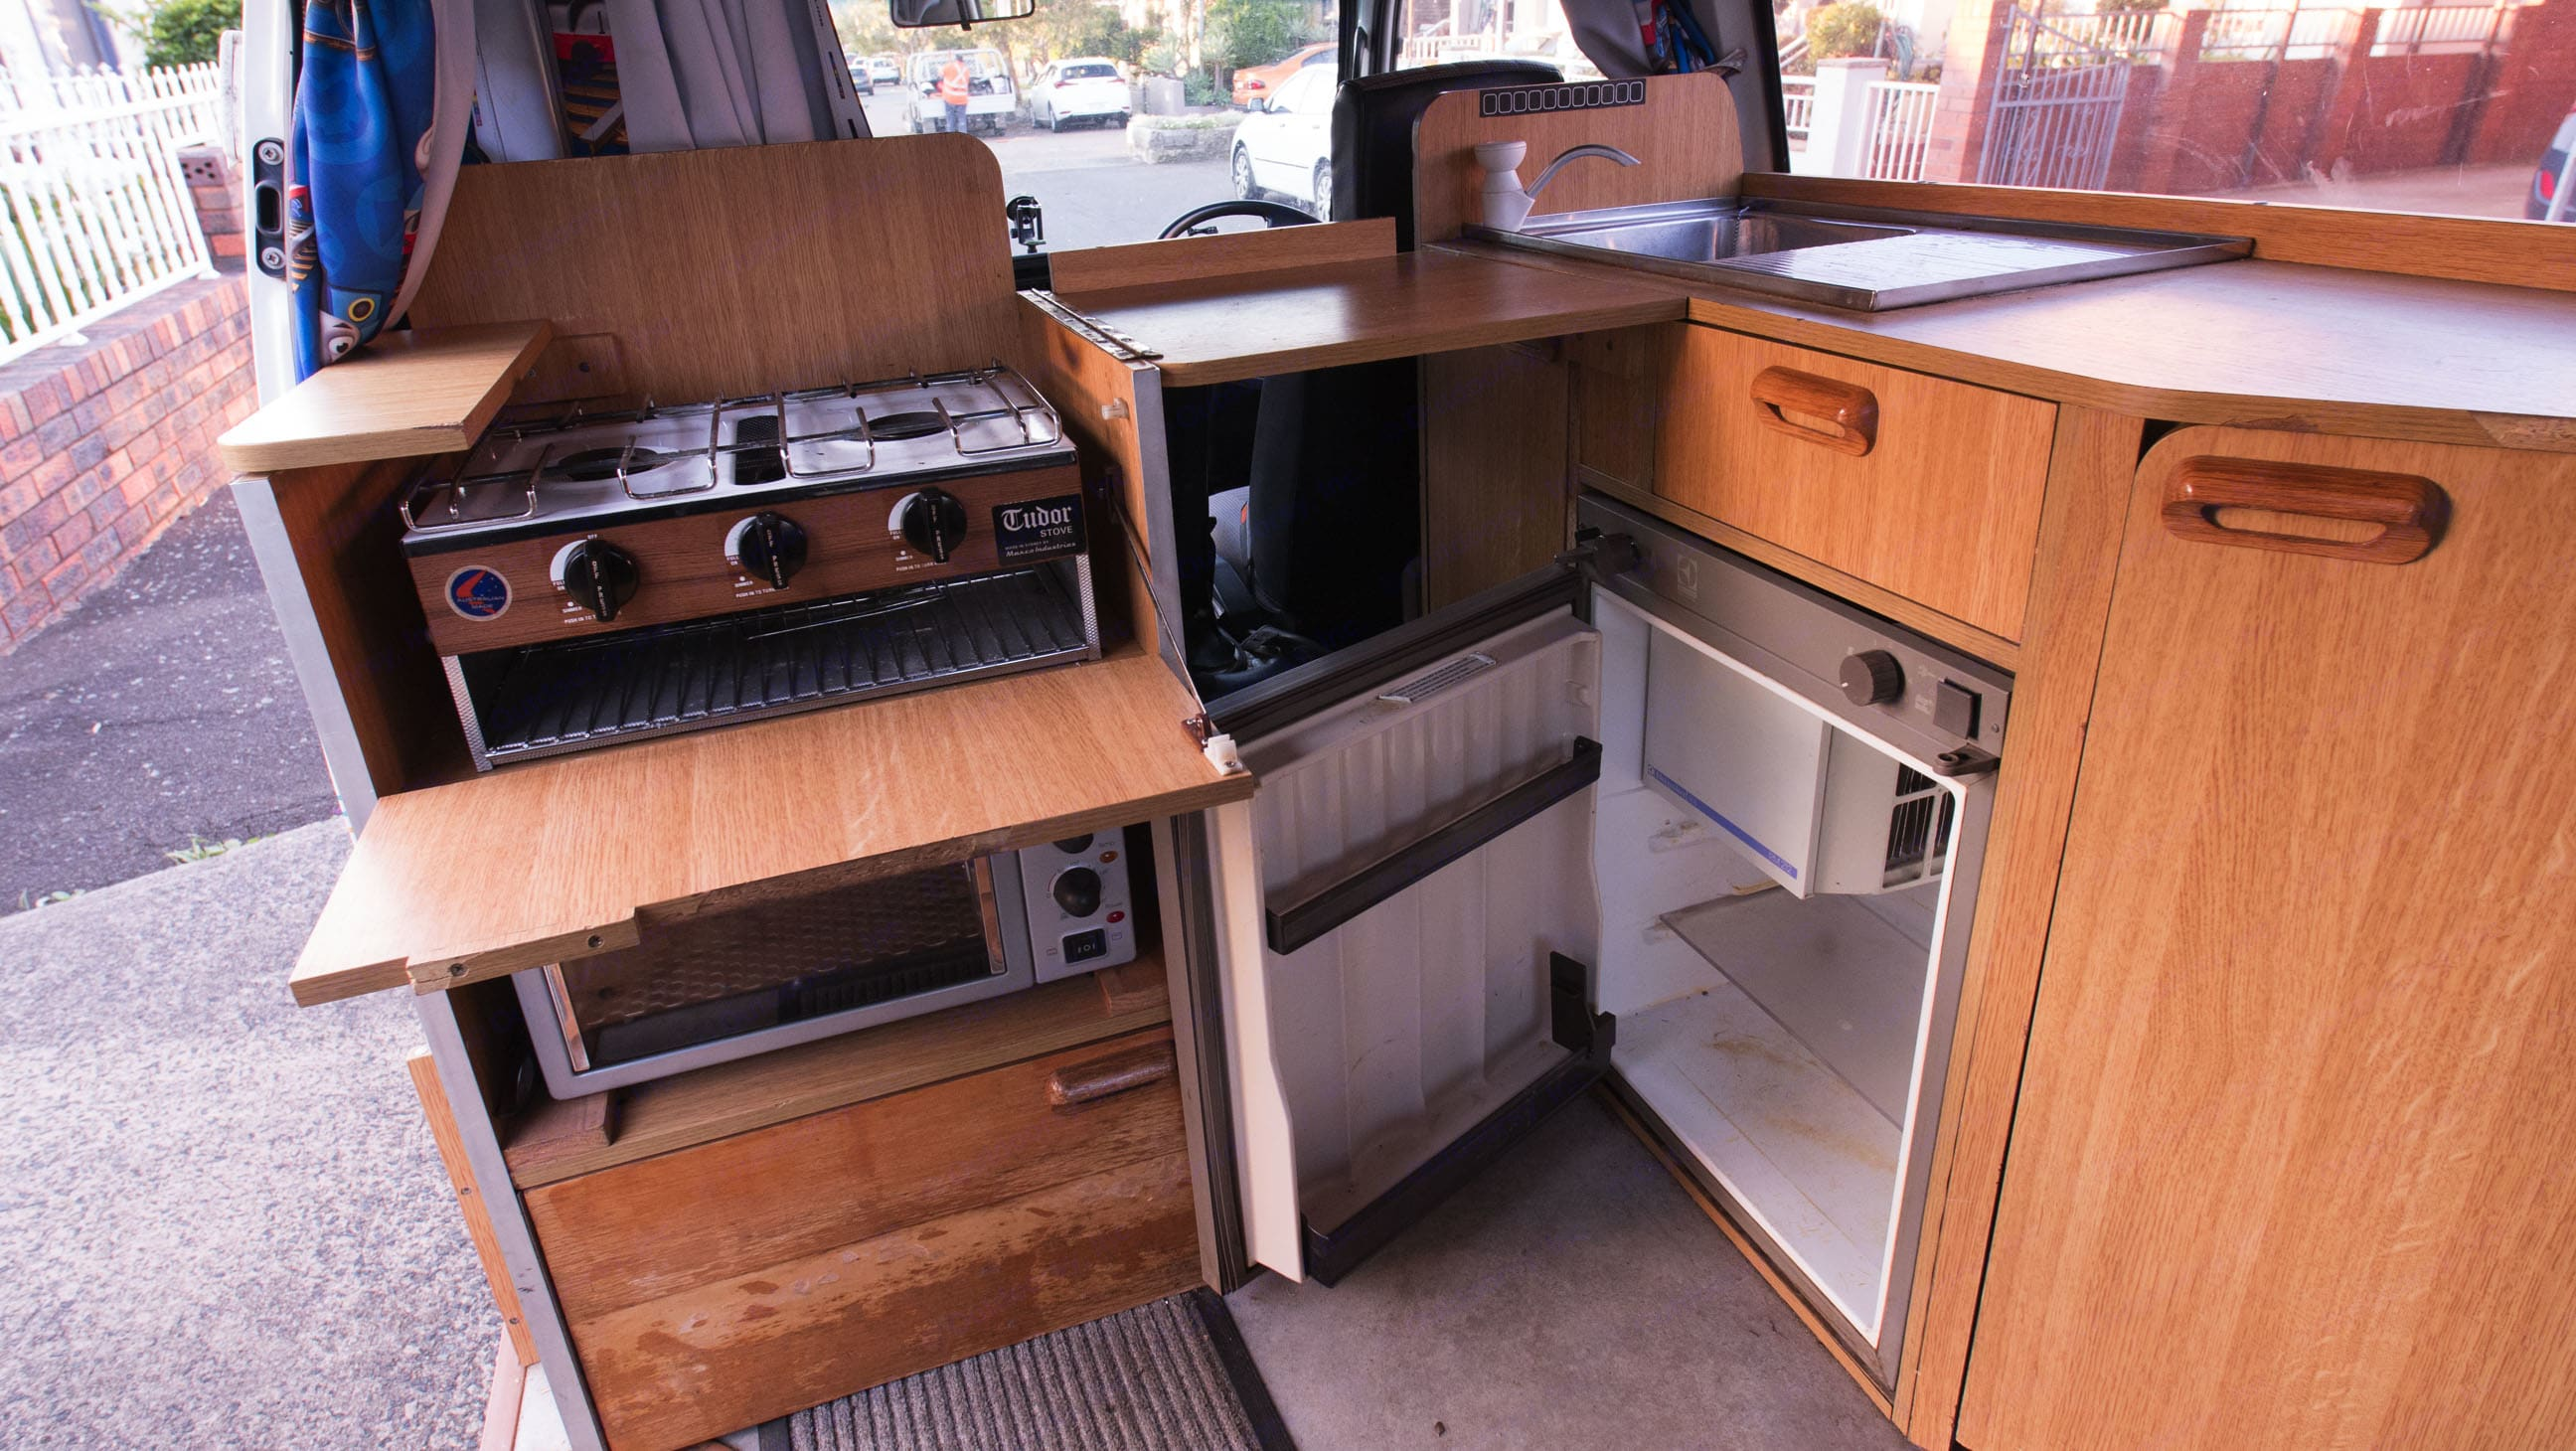 Stoves, fridge, sink, and oven. Like at home.. Nissan Urvan 1991